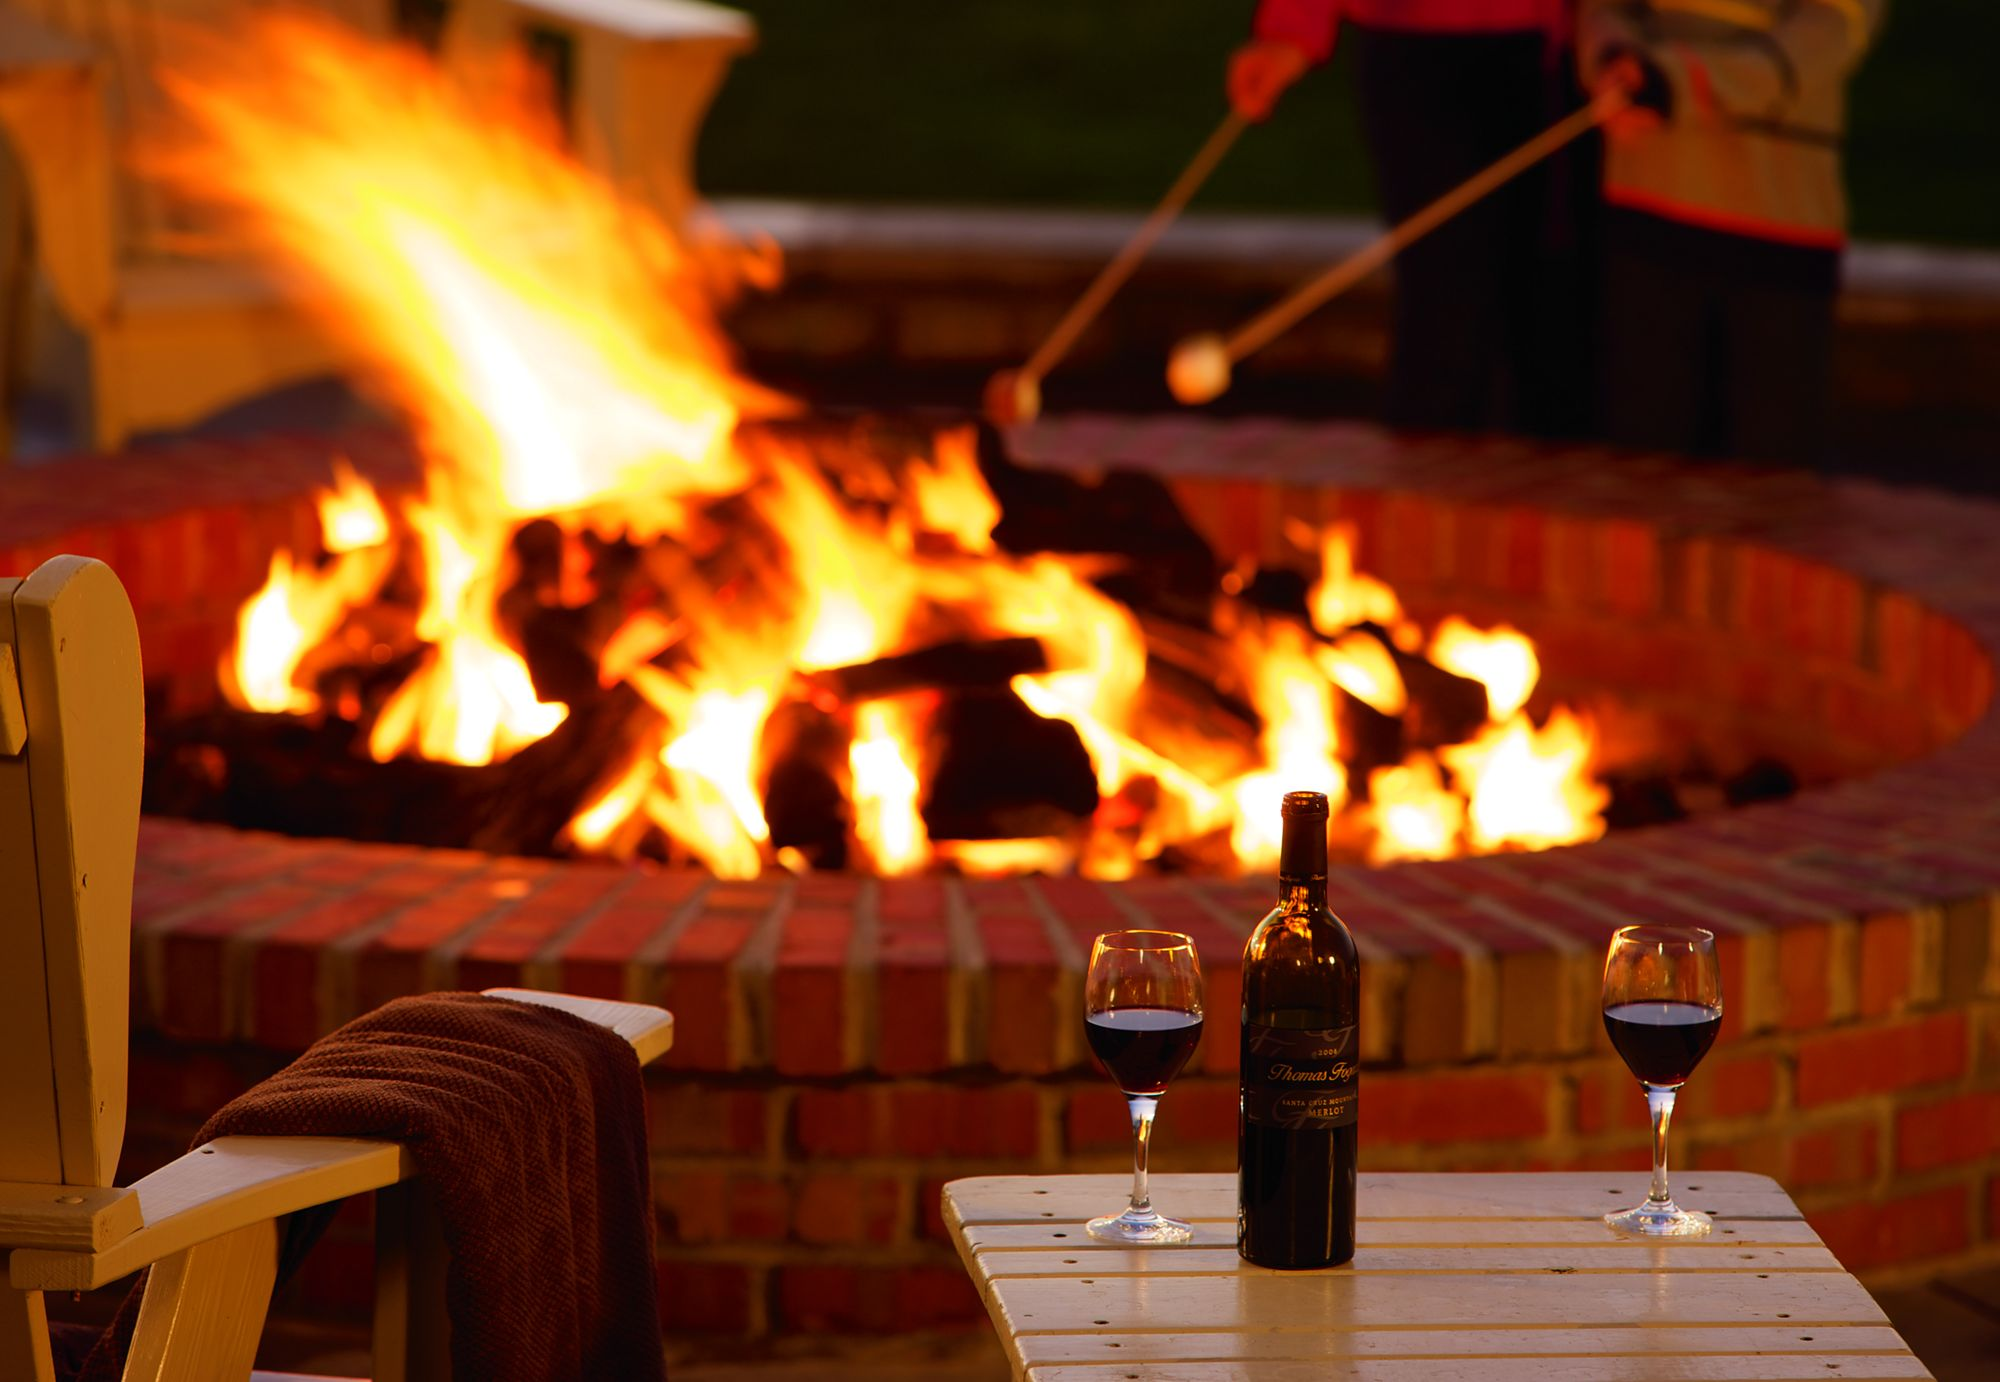 It's Fall about Family and Friends – sitting around the firepit